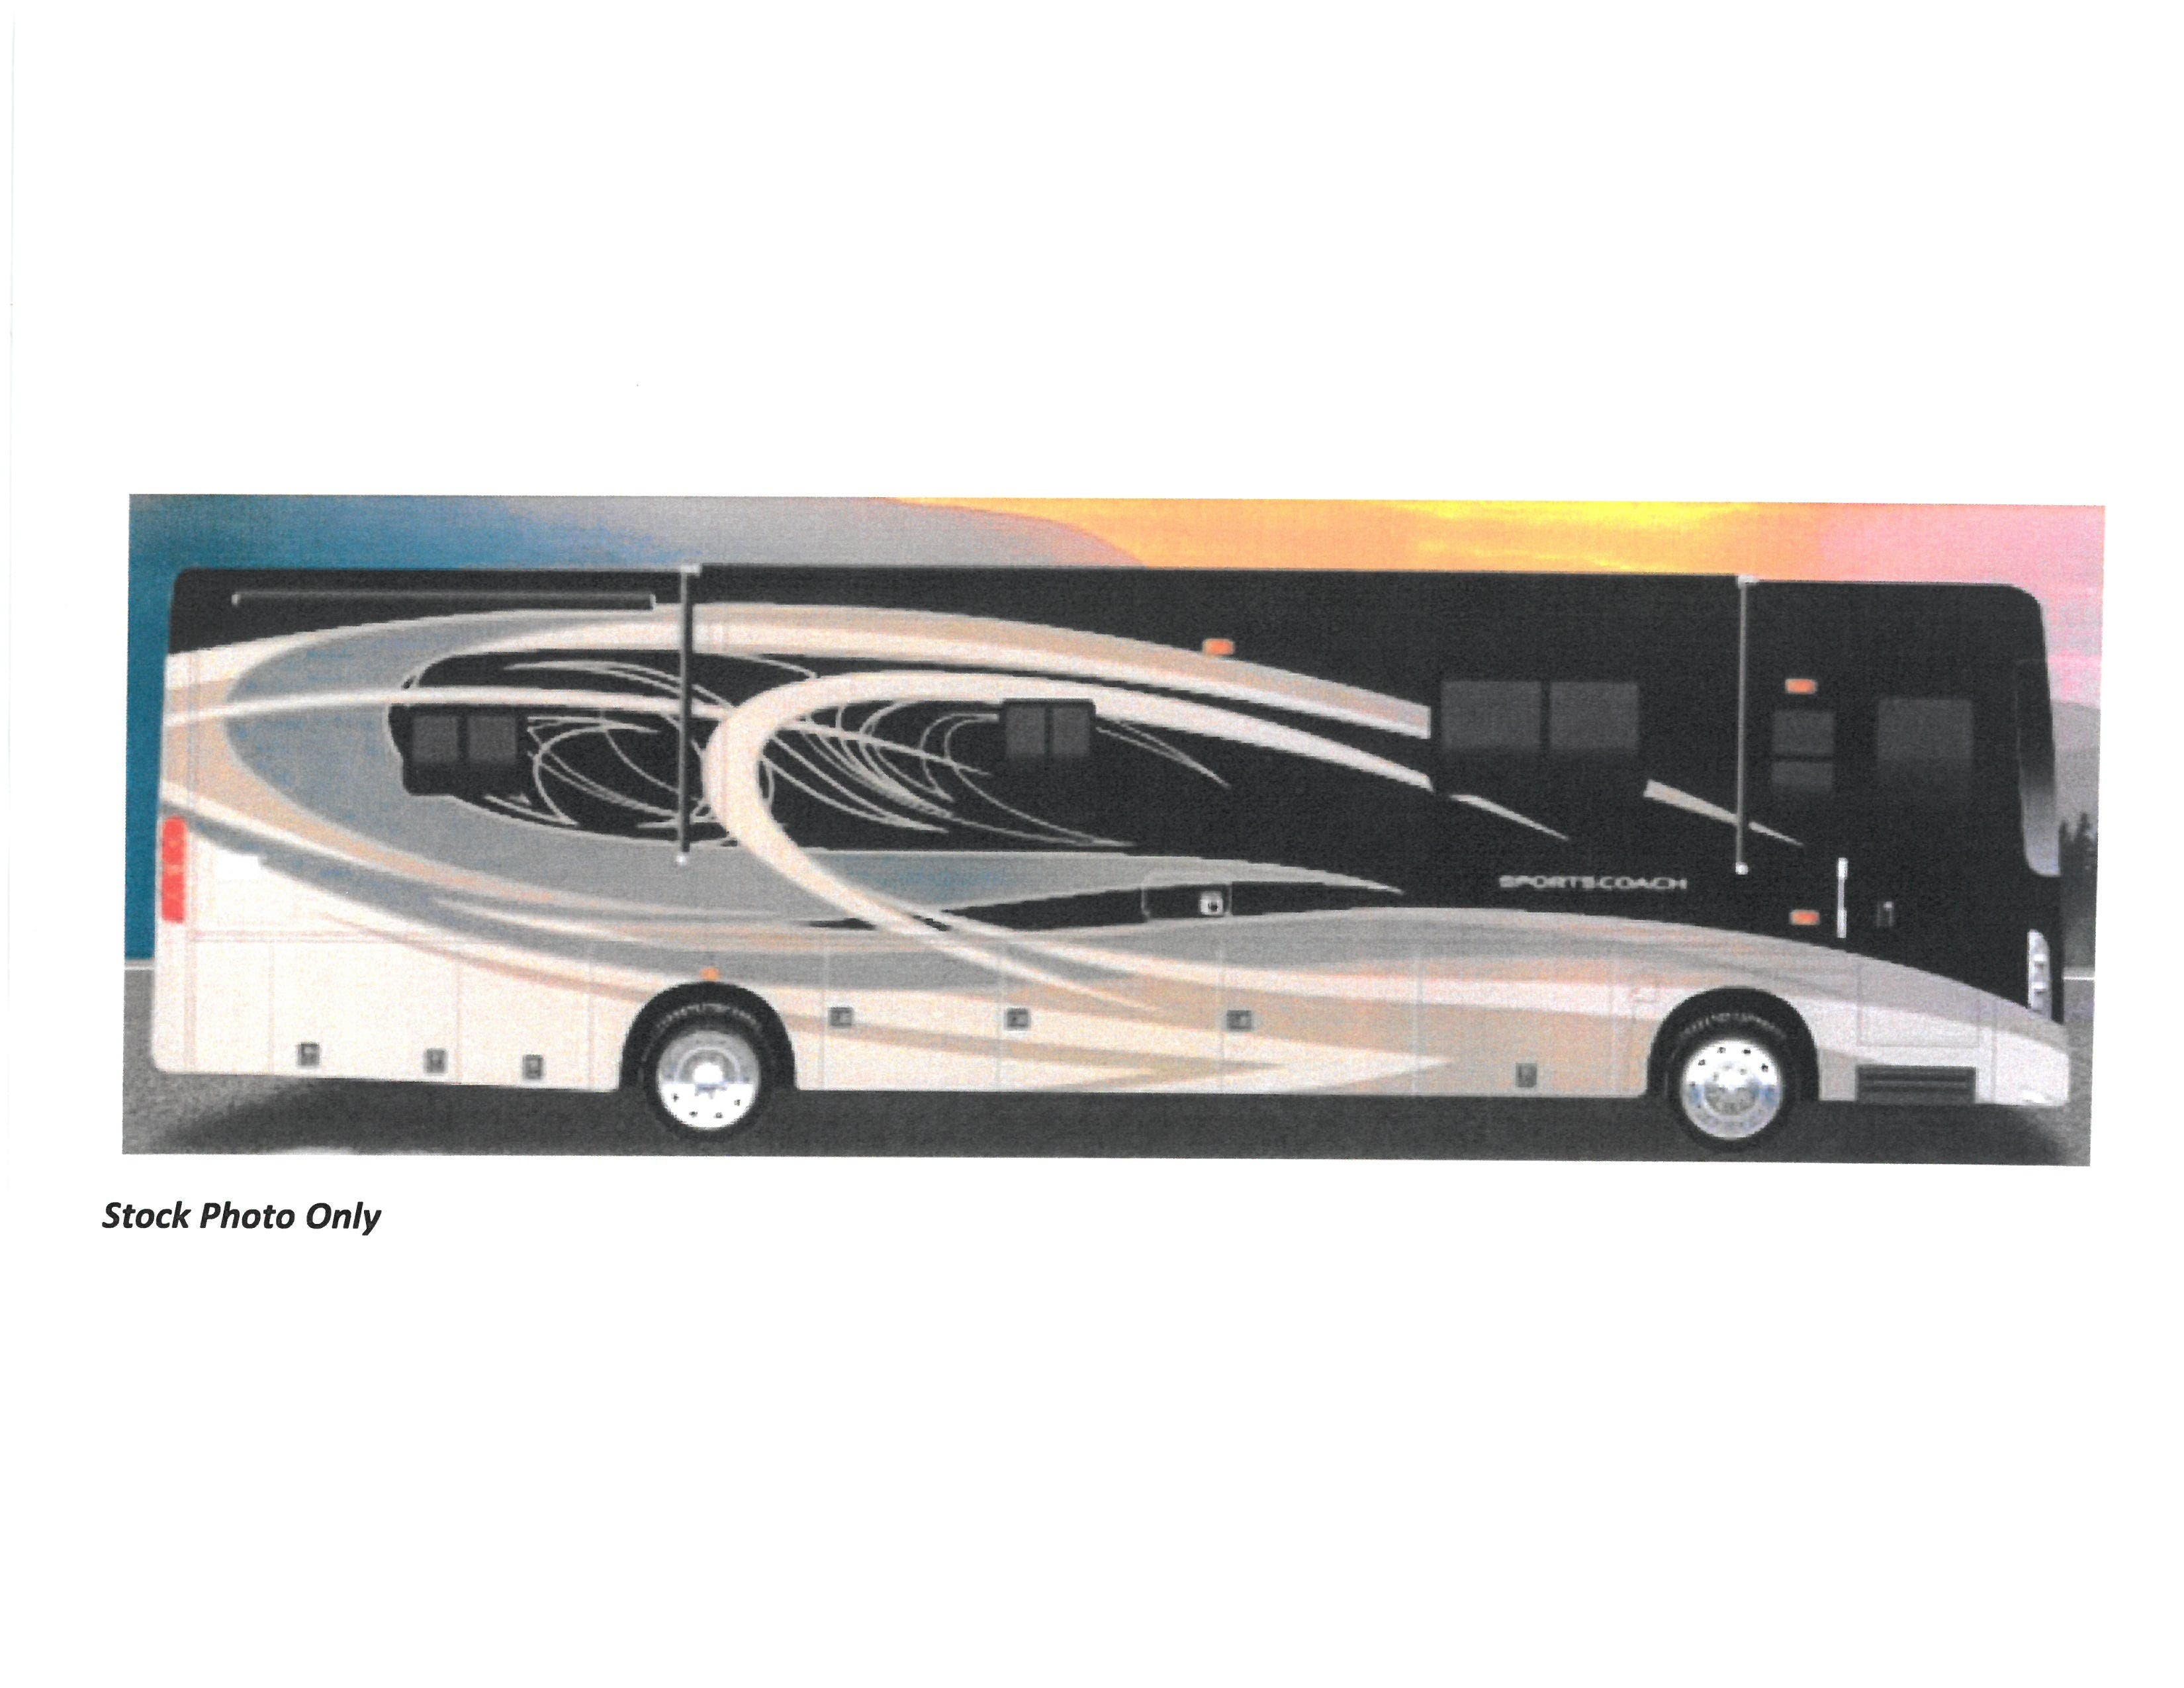 2022 Coachmen Sportscoach SRS 376ES